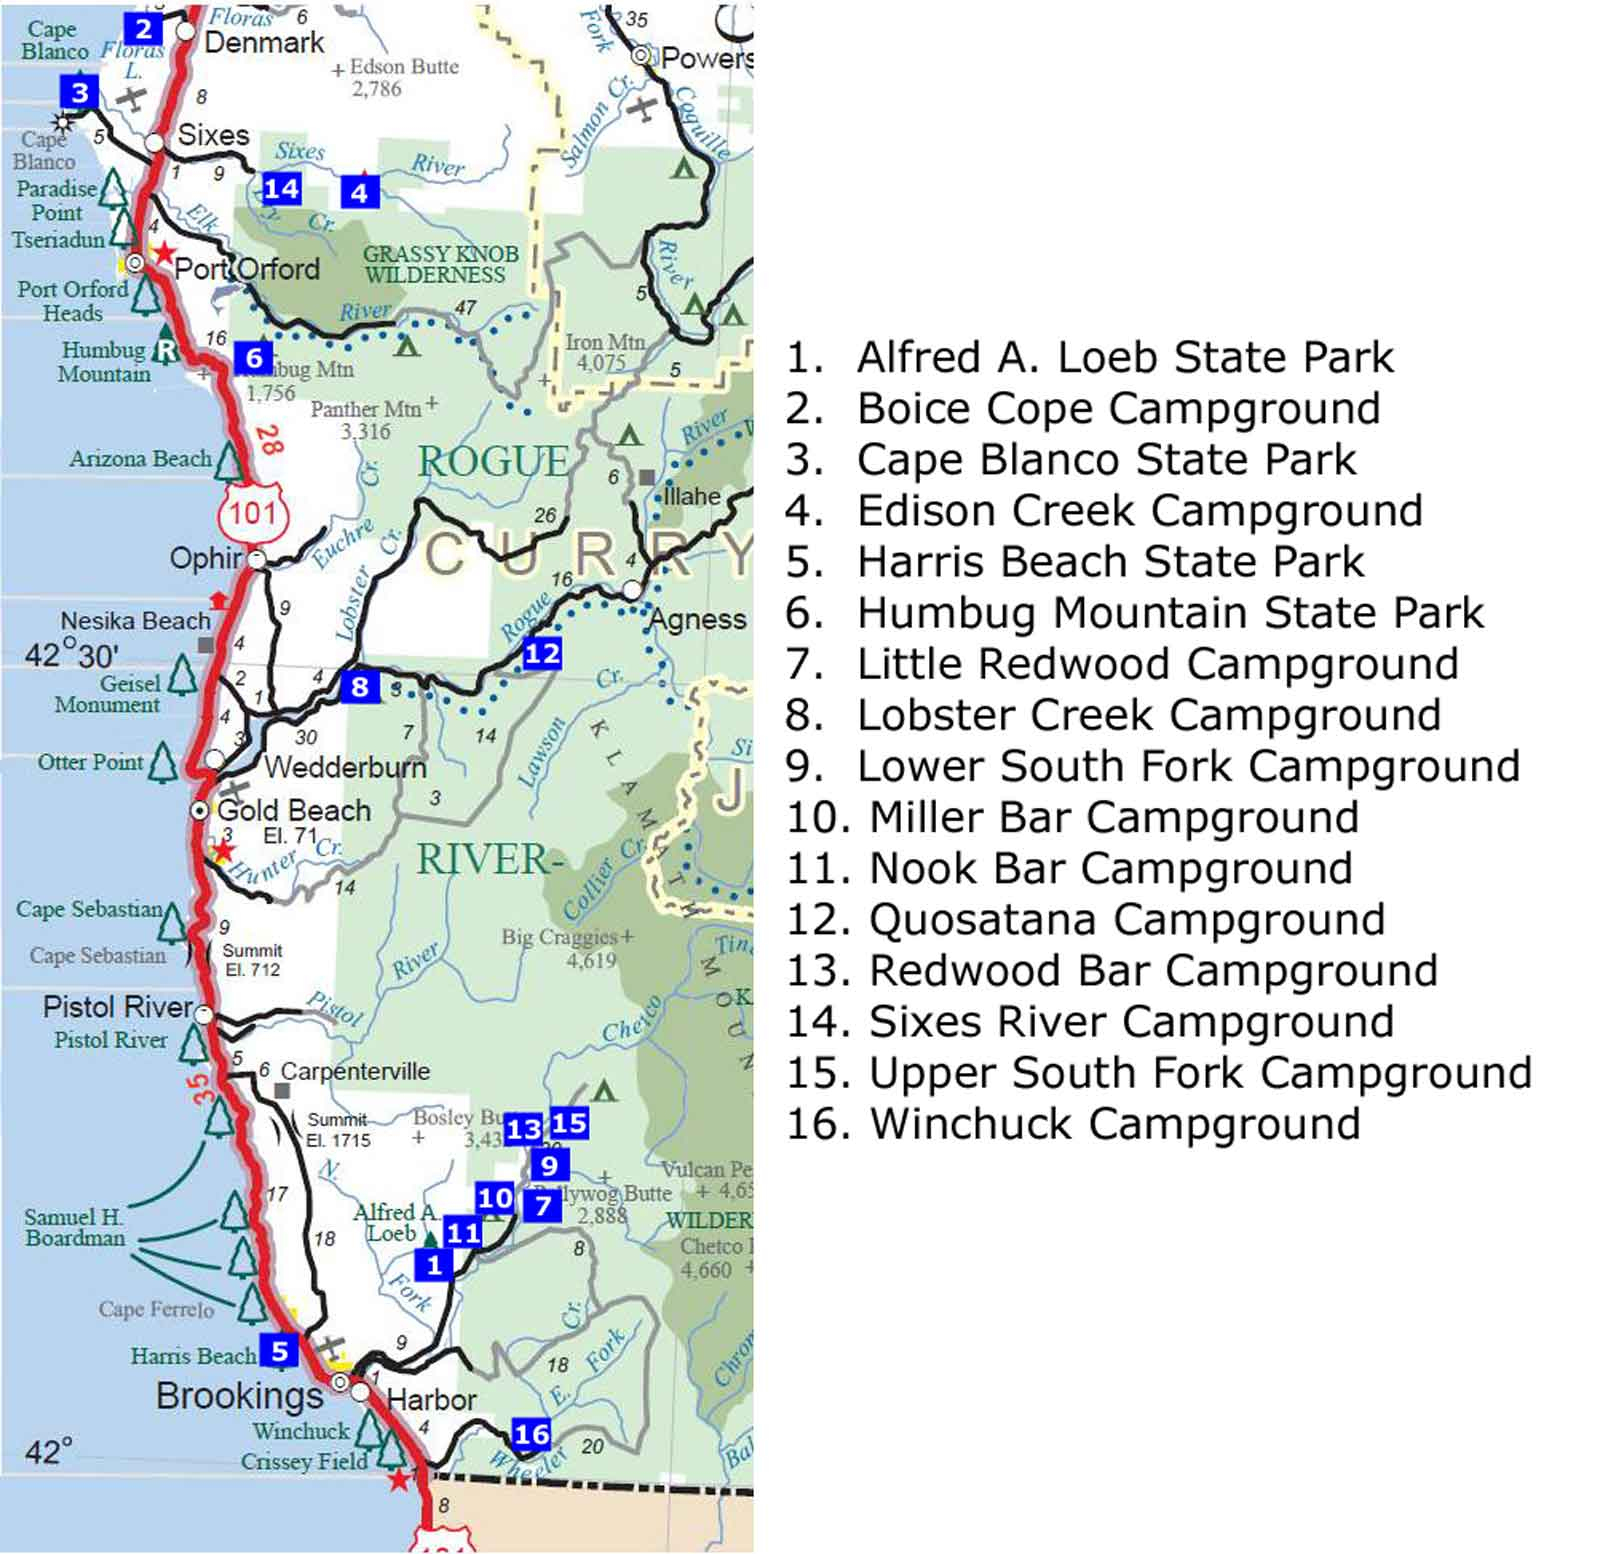 Northern California Attractions Map - Klipy - Northern California Attractions Map